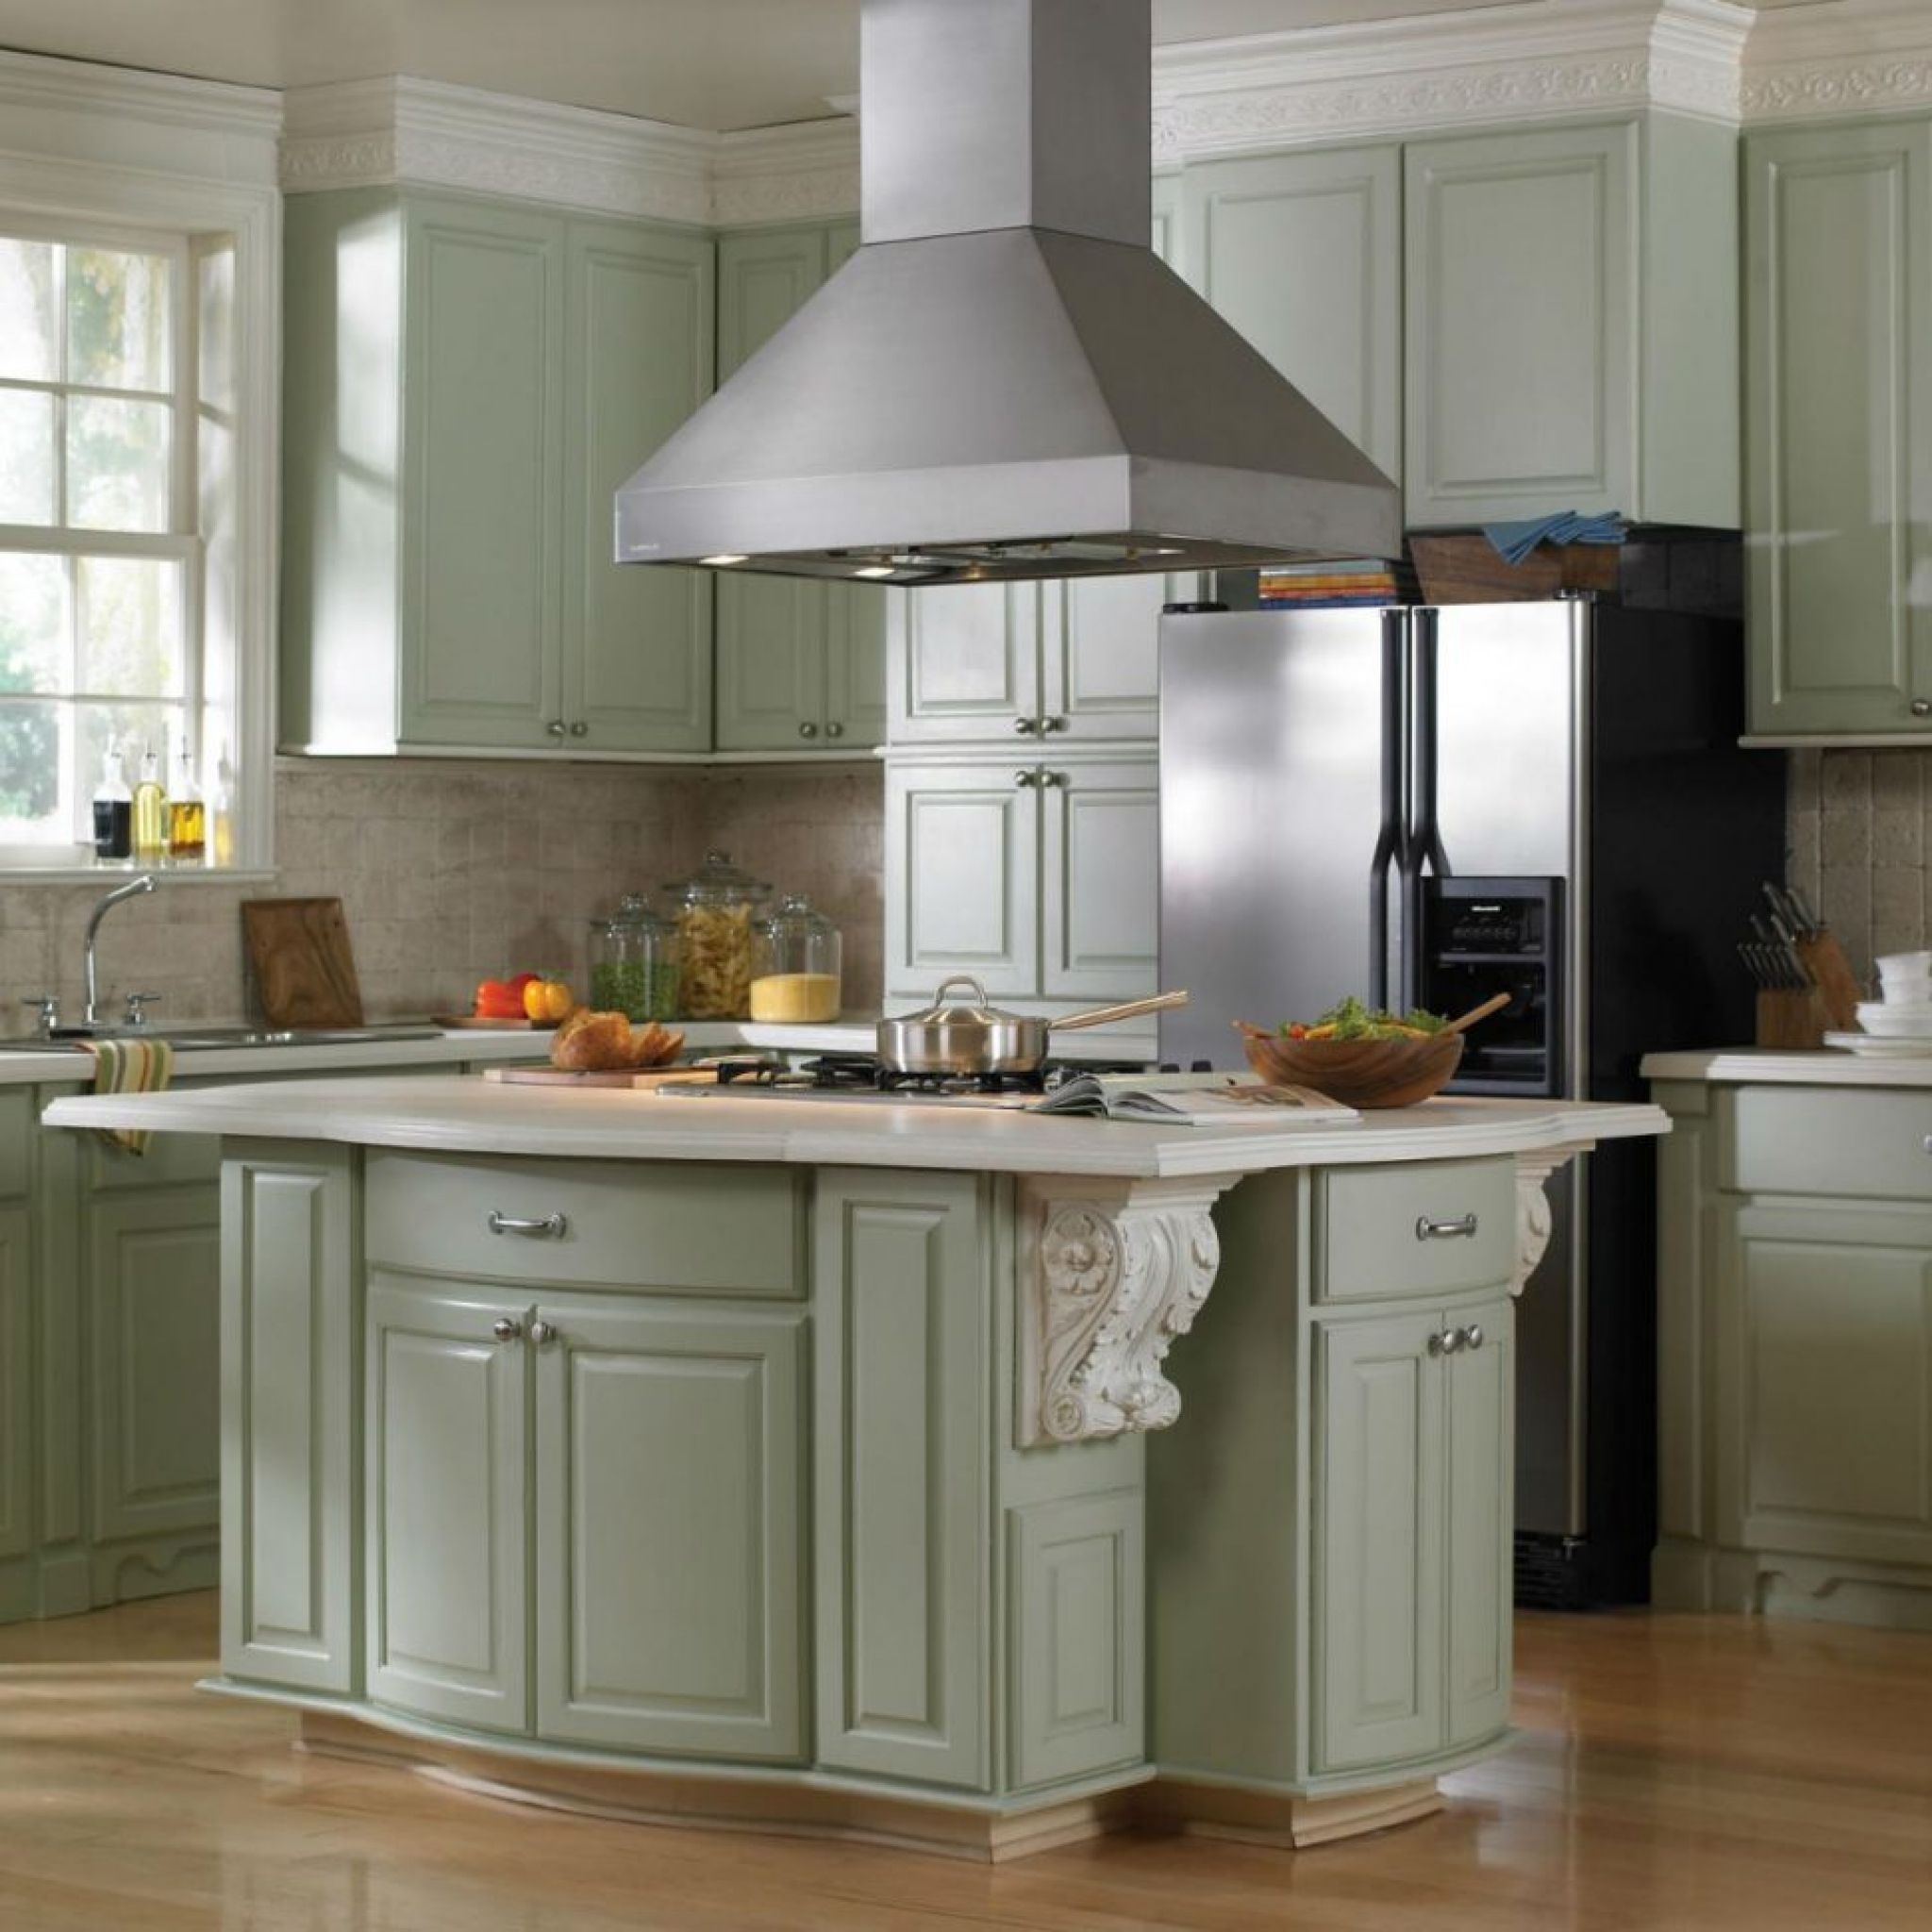 outdoor kitchen exhaust hoods best paint for interior Check more #0: 1907f171dc2c80b2b30ec3c71e3382a8